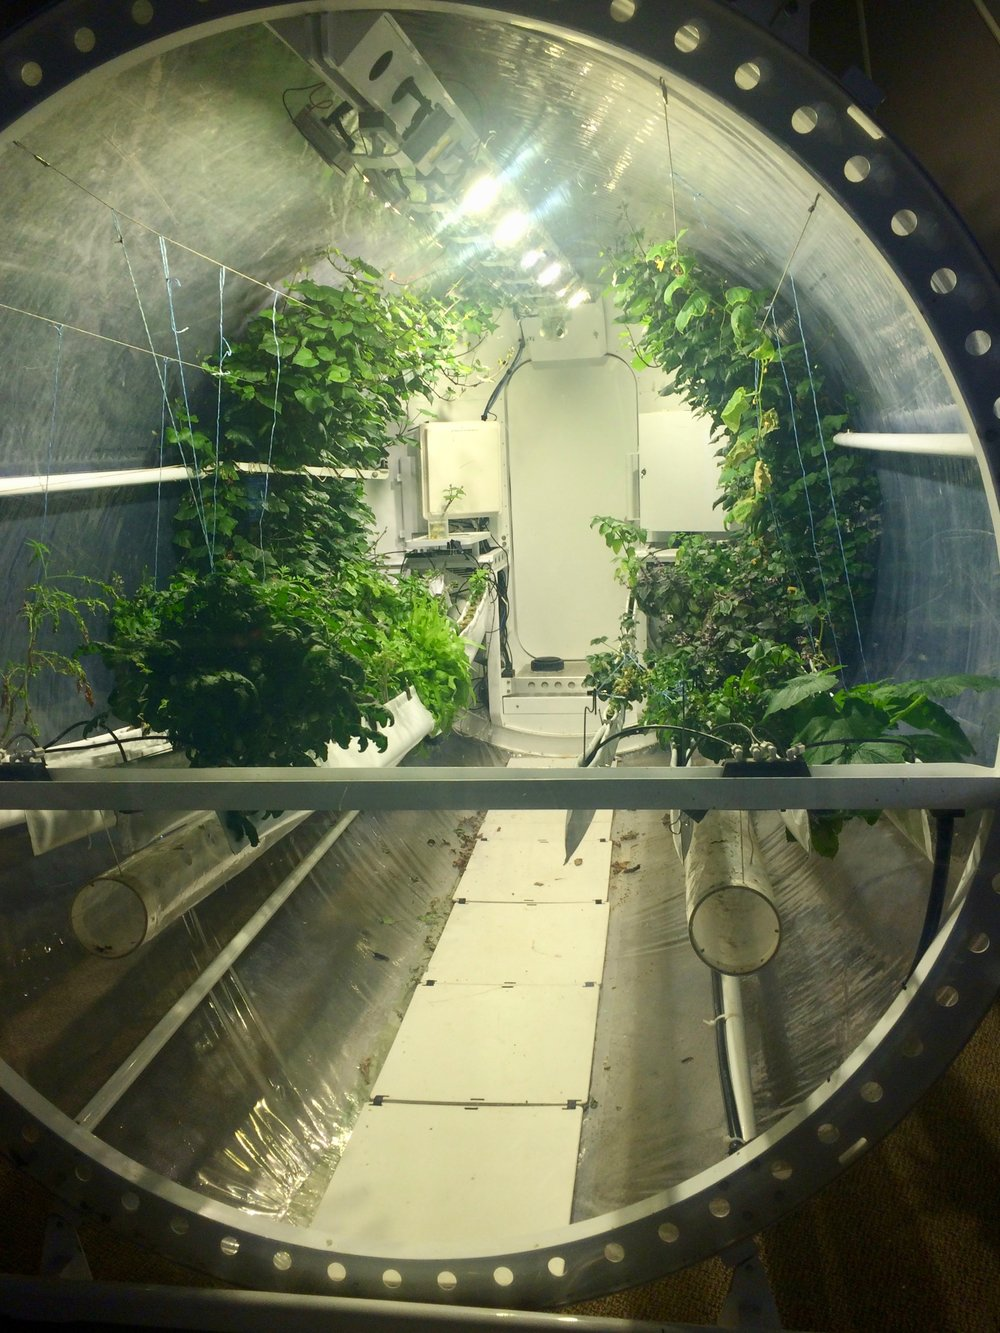 The lunar garden at Biosphere 2